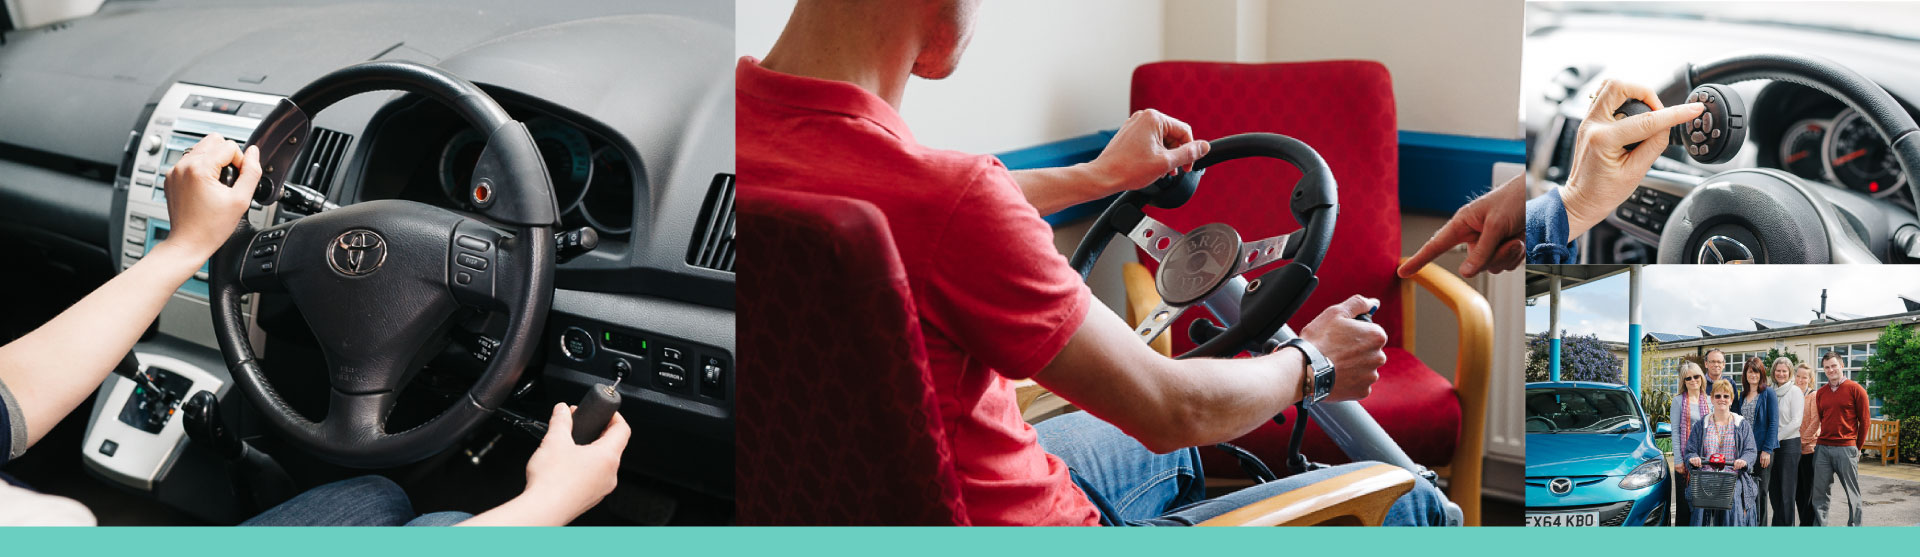 On the left is a picture showing a person using a steering ball in the left hand and a push-pull hand control accelerator brake in the right. The middle picture shows a young man using a free-standing Brig Ayd demonstration rig and the Driving Advisors hand pointing to the rig. The equipment is in one of our assessment rooms with a red armchair in the background. The picture on the top half is of someone using a Lodgesons combined steering aid remote secondary control unit, on a steering wheel, with their left hand. One finger is touching the controls on the control unit. Under that is a picture of 7 members of Driving and Mobility staff standing outside the front entrance of The Vassall Centre.